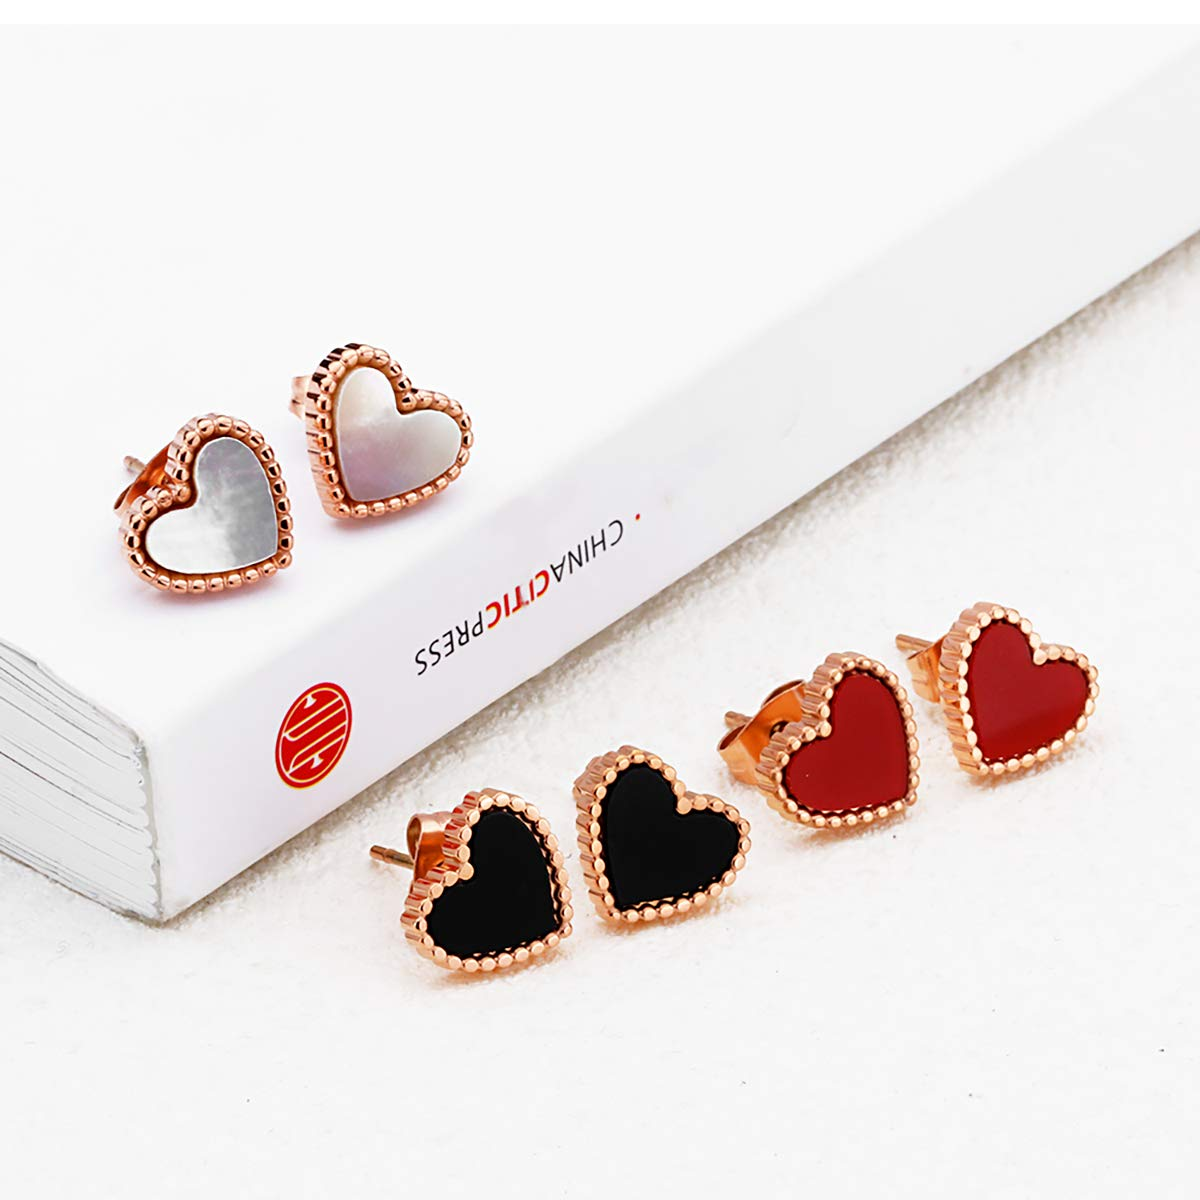 3 Pairs Love Heart Stud Earrings Set Stainless Steel Heart Earrings Set